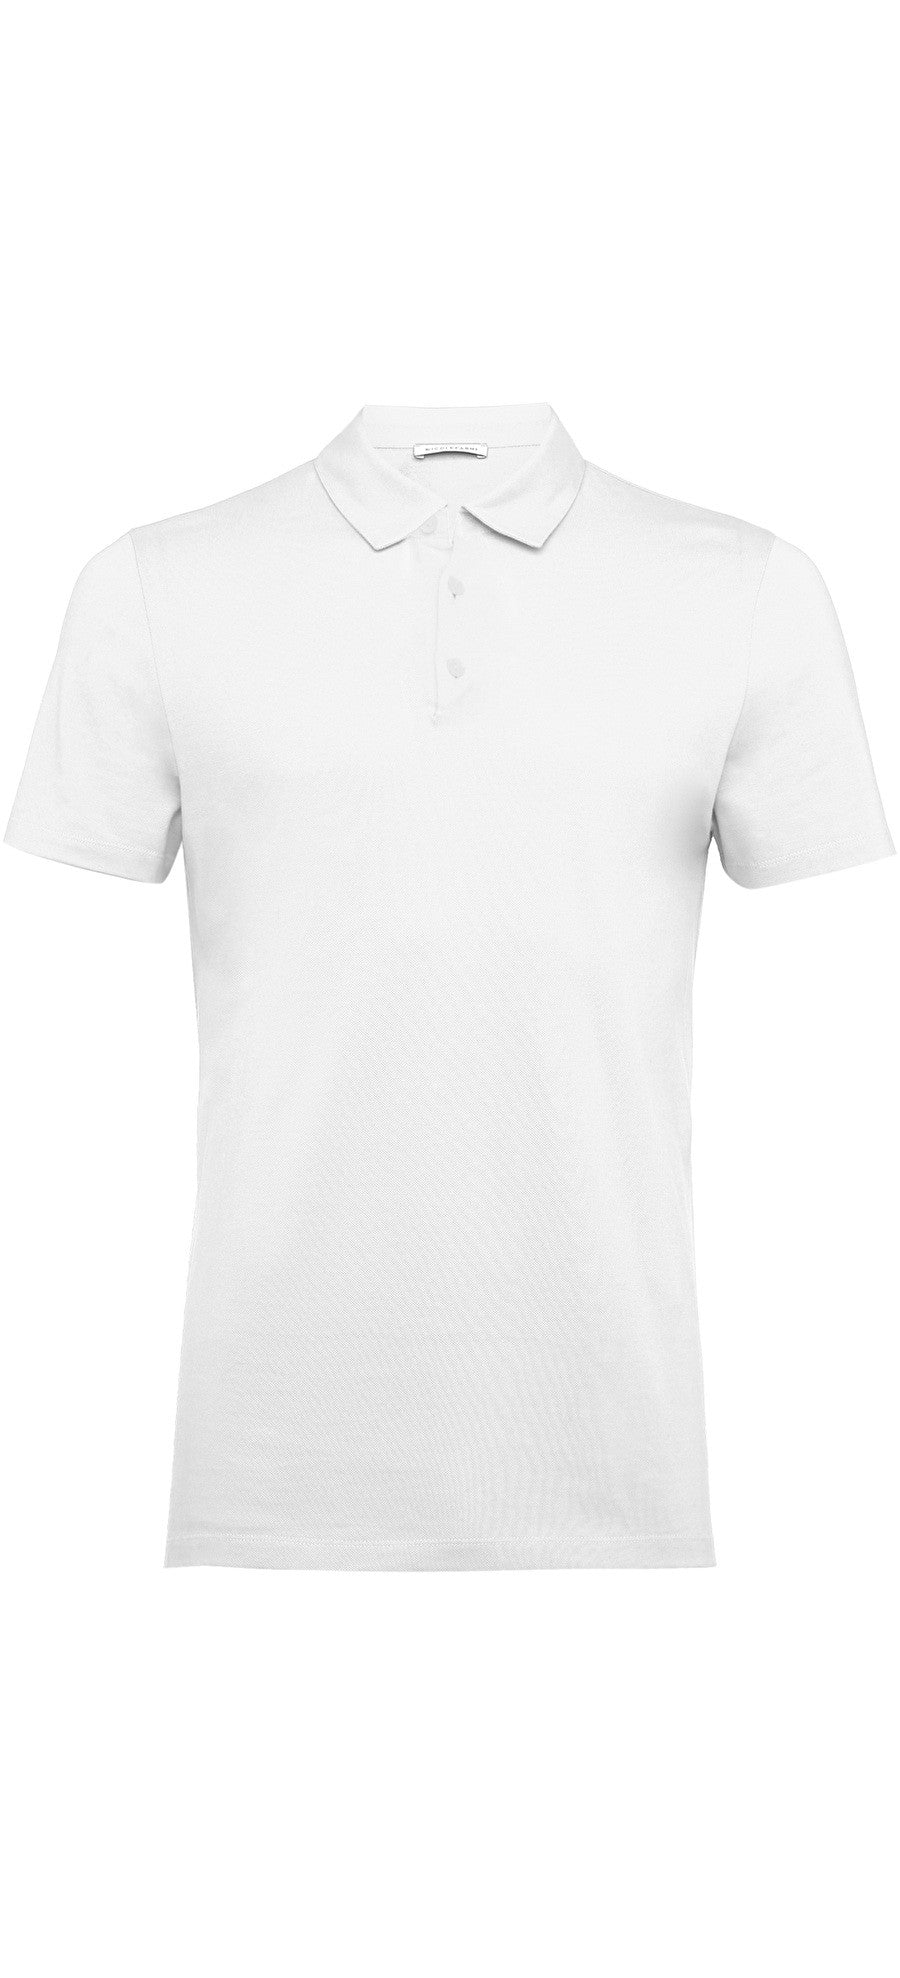 POL WHITE T-SHIRT